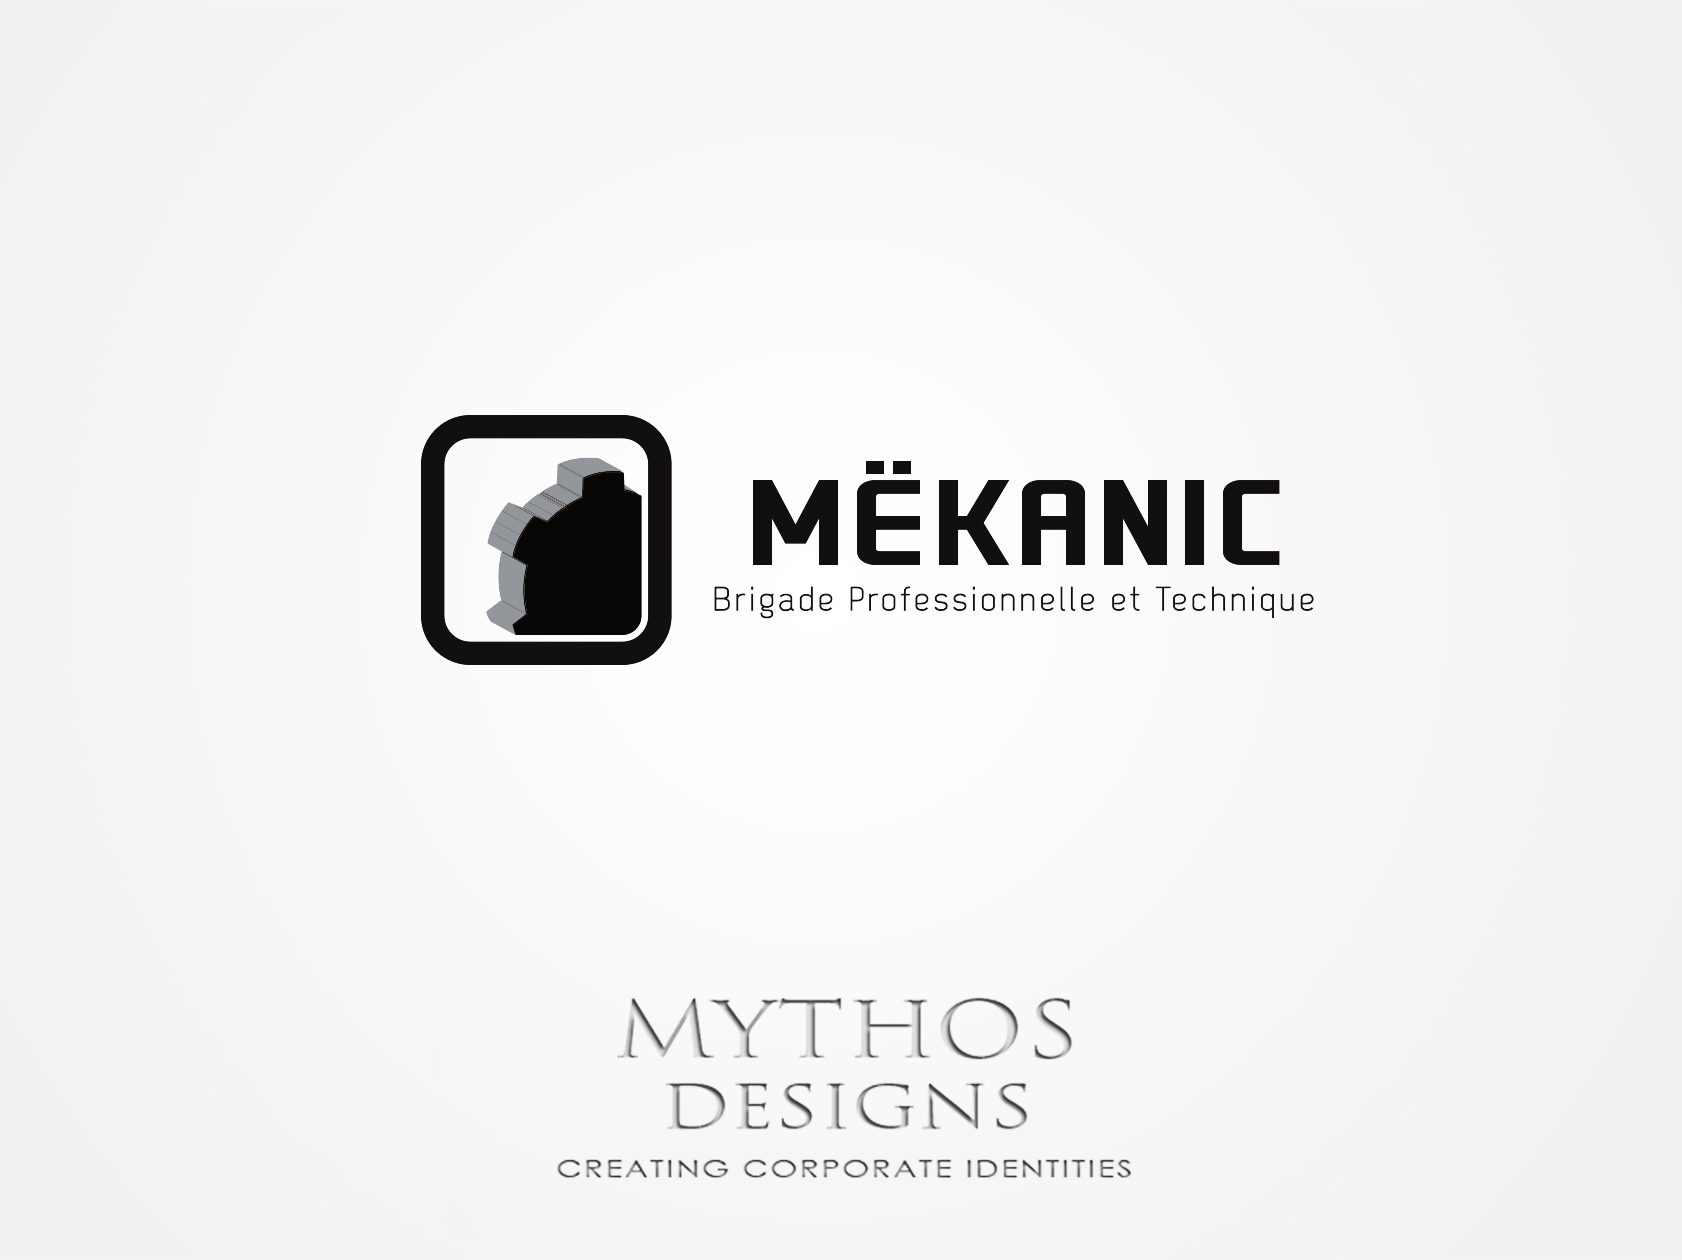 Logo Design by Mythos Designs - Entry No. 339 in the Logo Design Contest Creative Logo Design for MËKANIC - Professional and technical squad.